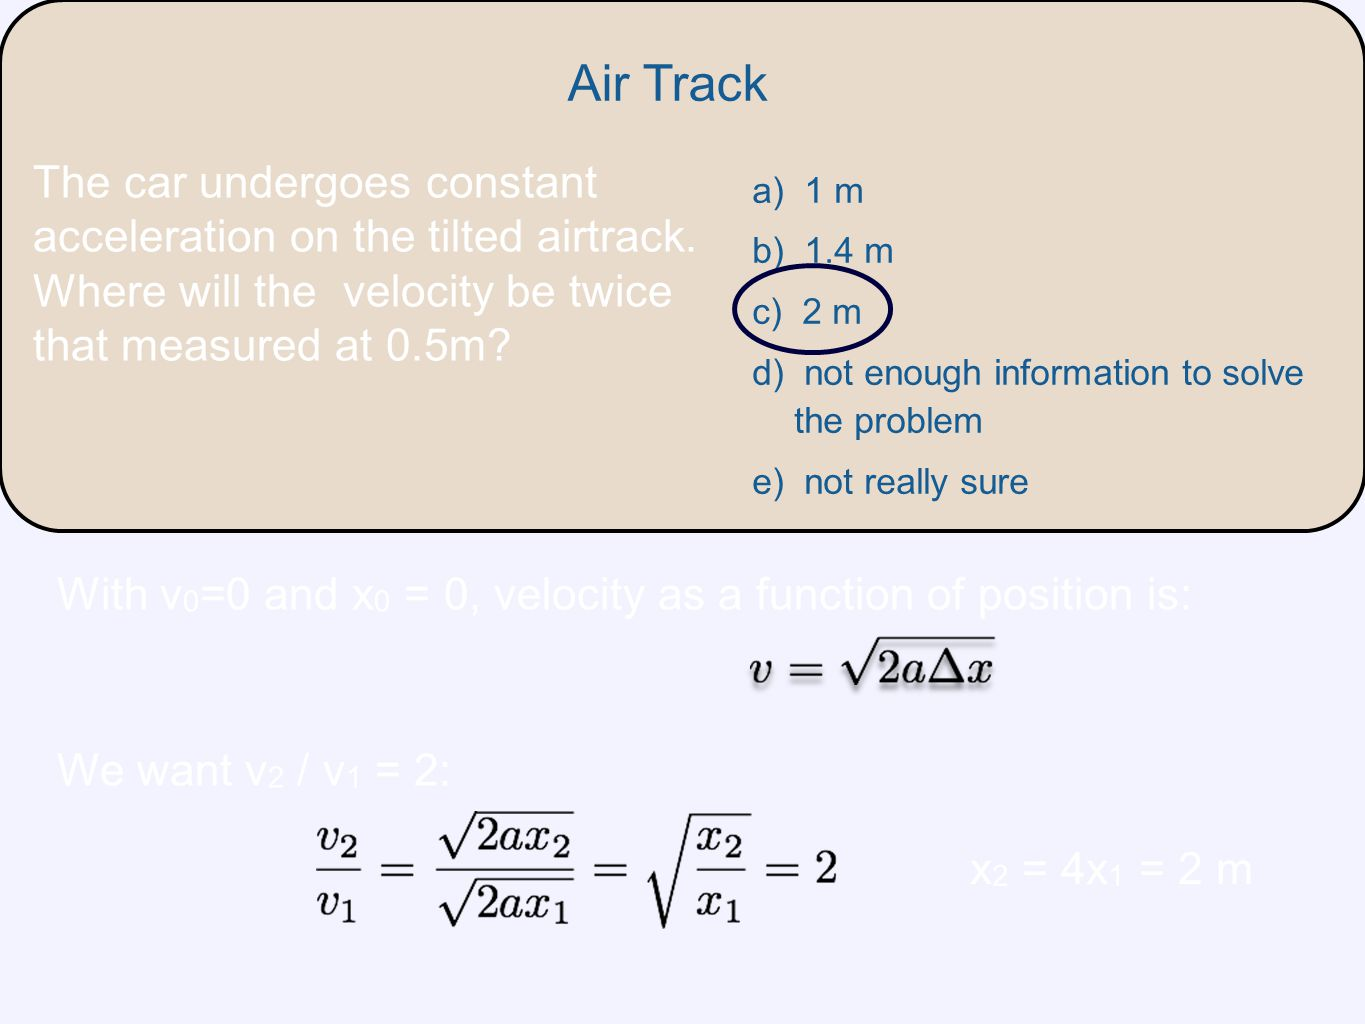 Air Track The car undergoes constant acceleration on the tilted airtrack. Where will the velocity be twice that measured at 0.5m